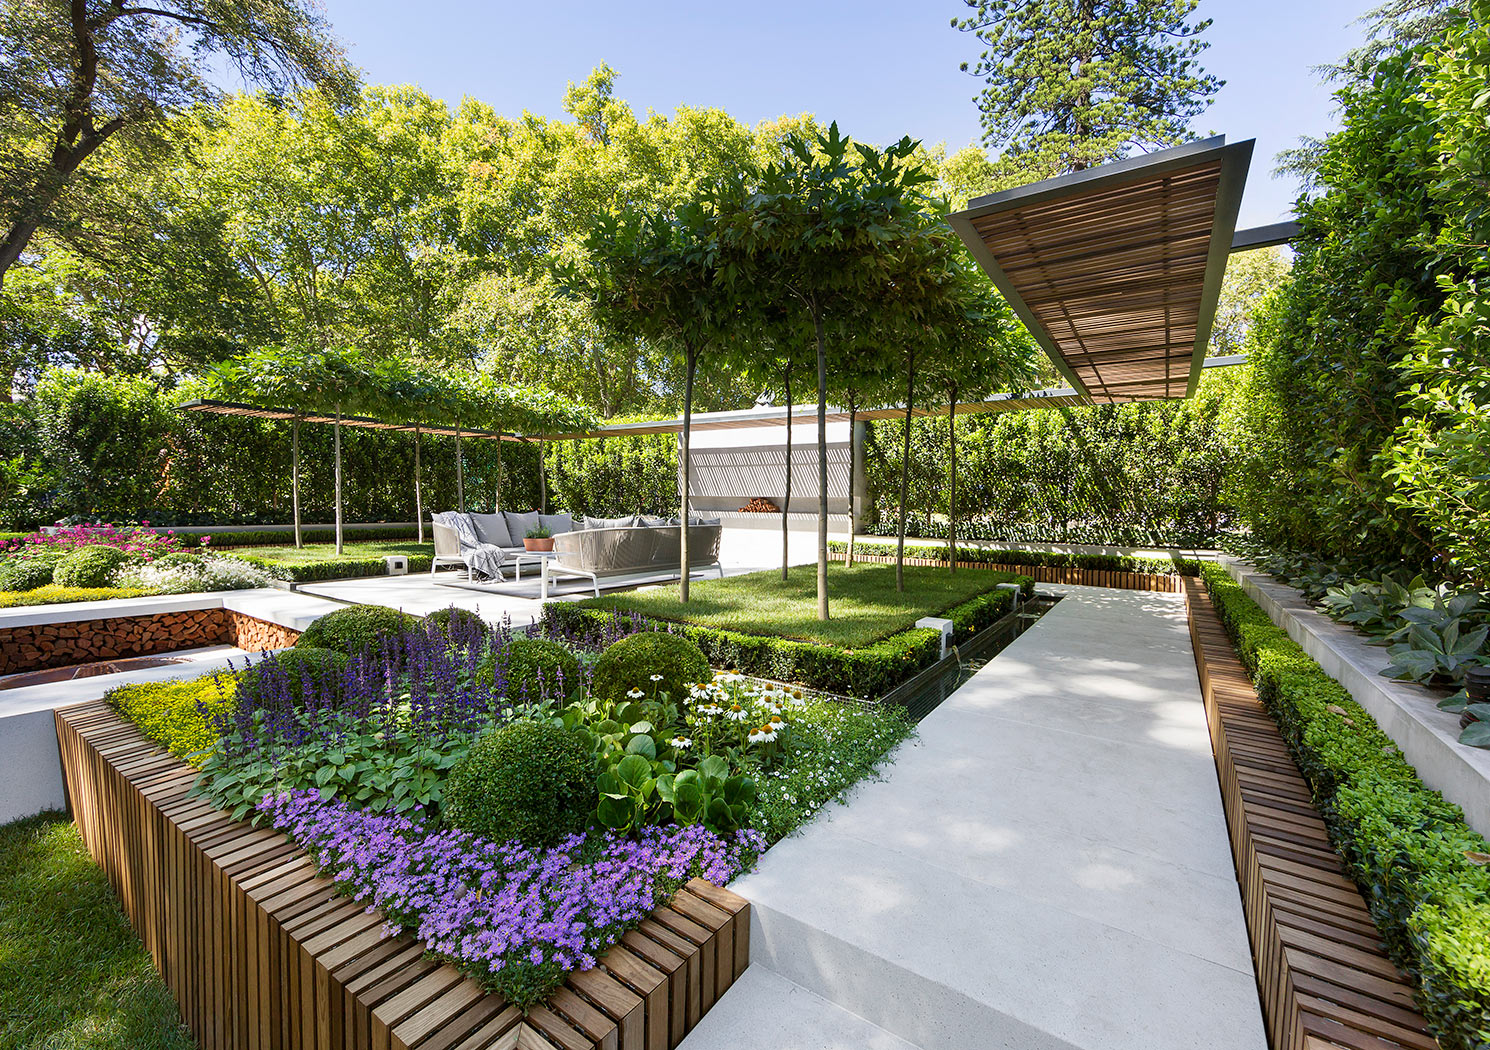 Landscape design melbourne nathan burkett design for Garden design channel 4